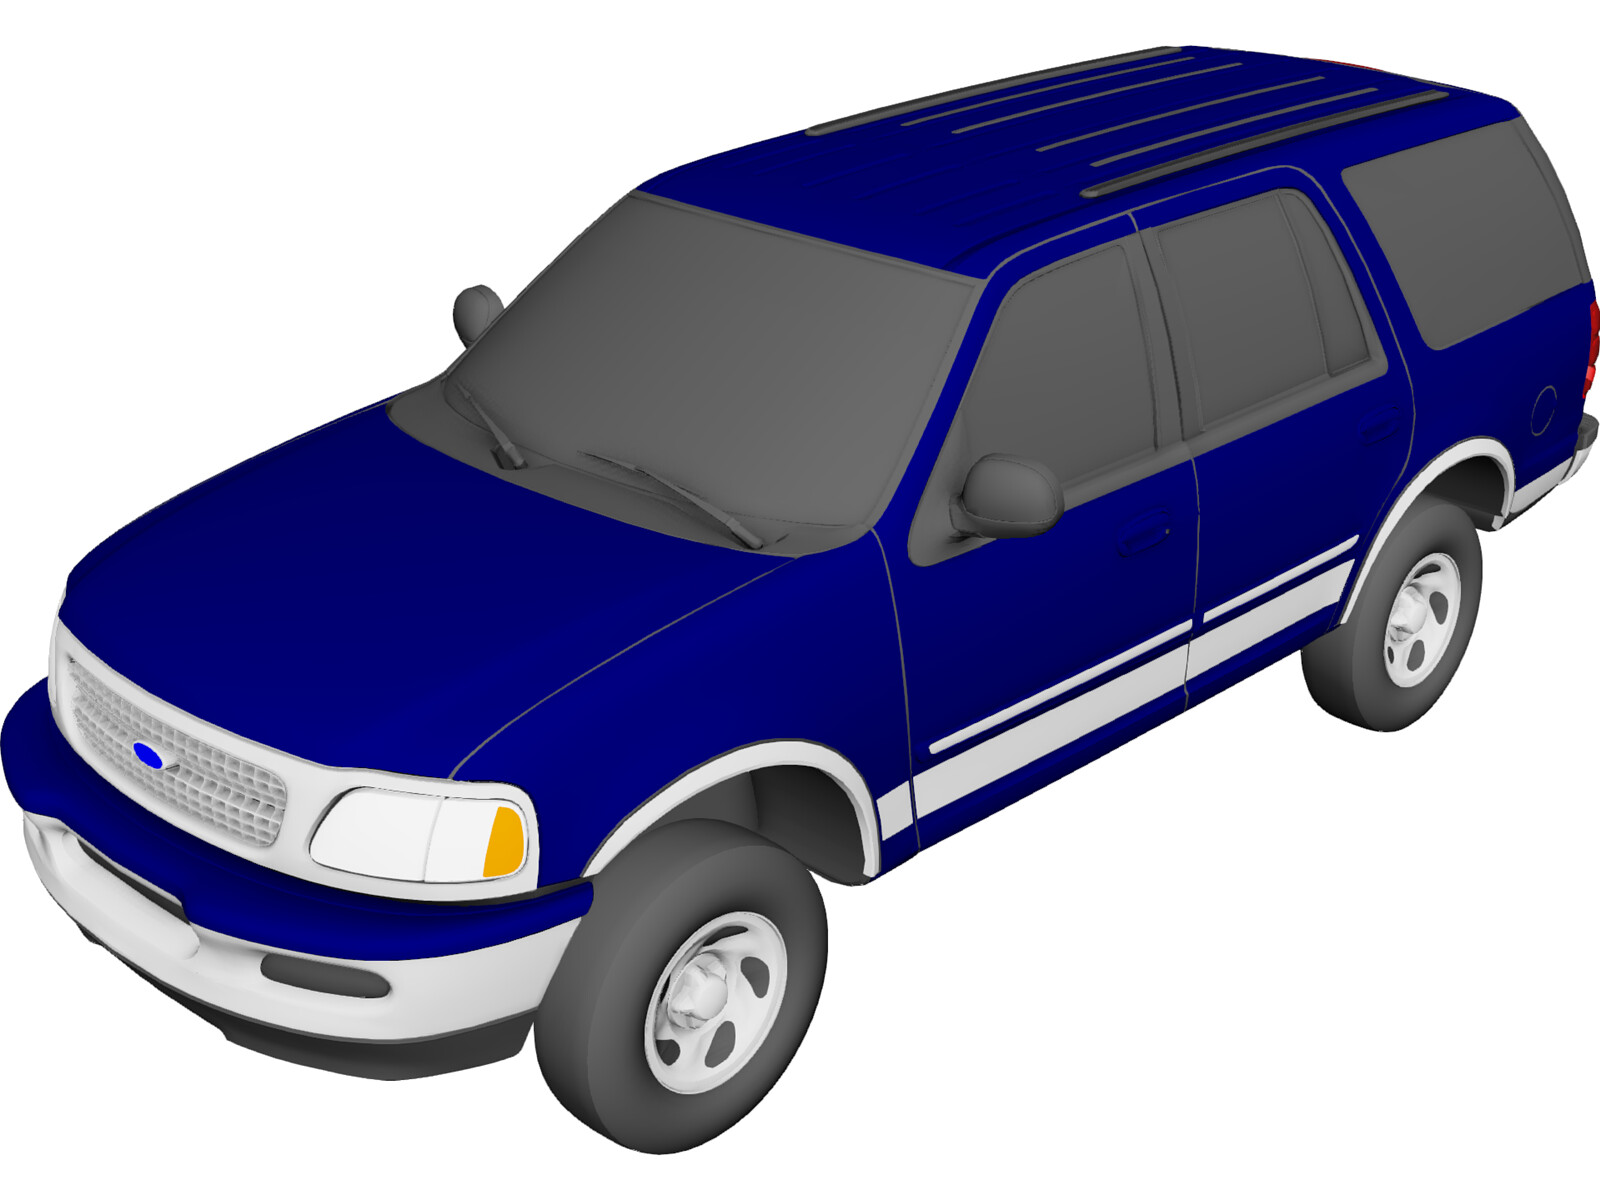 Ford Expedition XLT (1997)